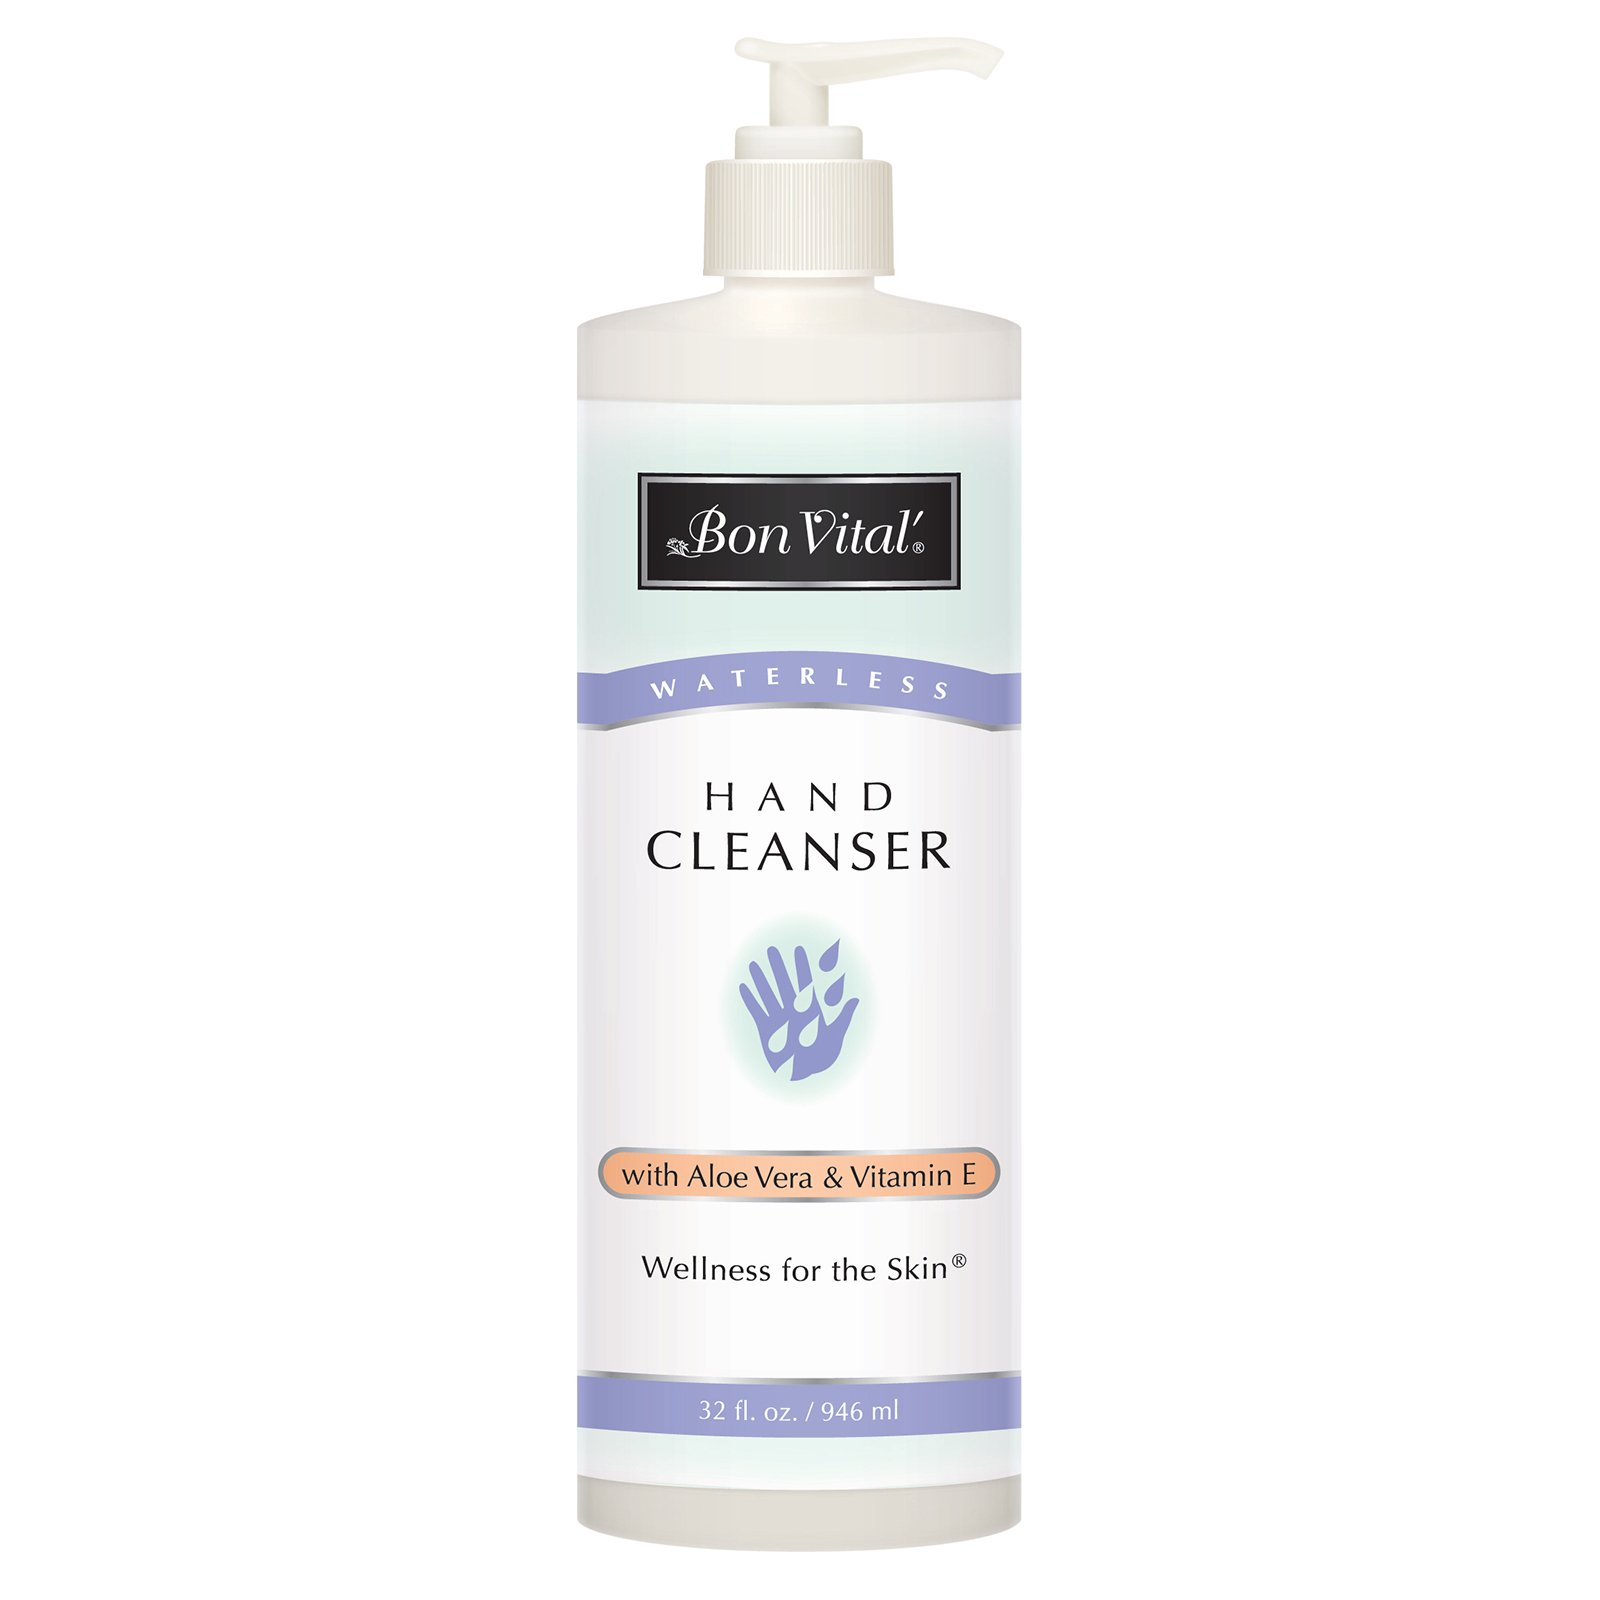 Bon Vital' Hand Cleanser, Waterless Hand Soap, Easy Way for Massage Therapists to Wash Hands Between Clients, Leaves Hands Smooth and Soft After with No Sticky Residue, 32 Ounce Bottle